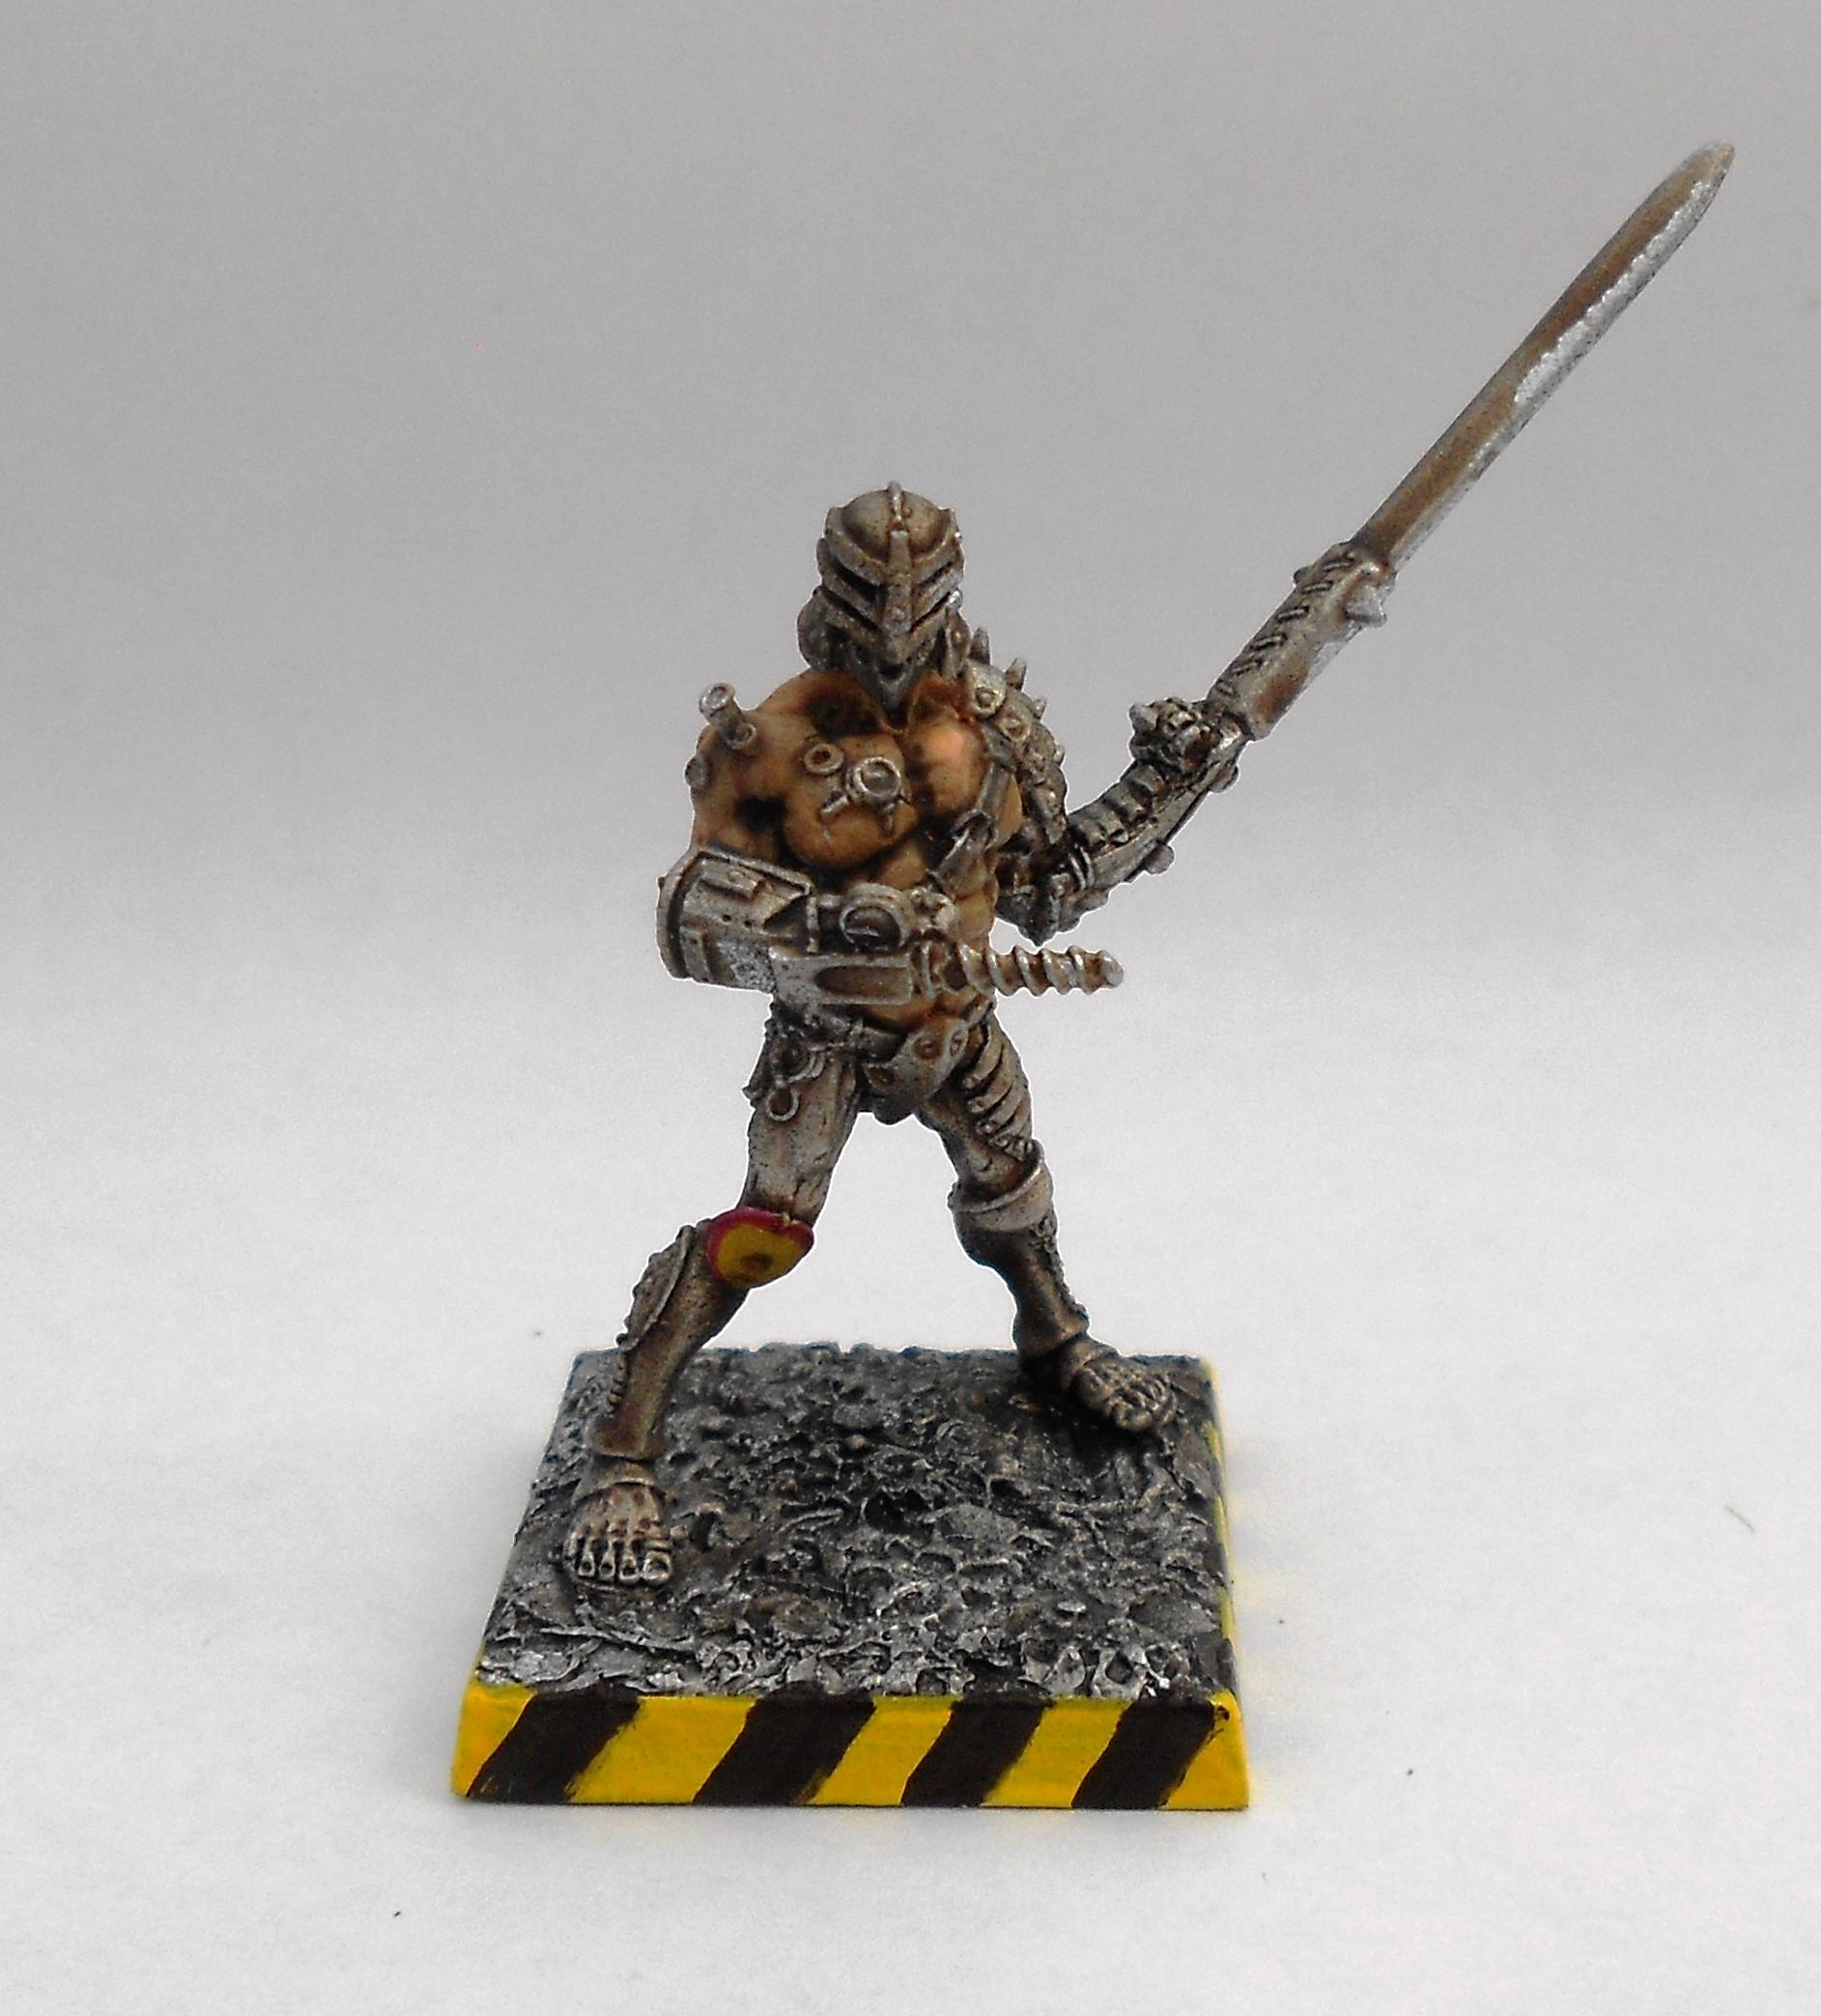 28mm, 35mm, Basius Fullseticus, Brutal, Dungeon, Elven Forest Floor, Hand Cast, Mordheim, New, Rare, Resin, Roleplay, Rpg, Science-fiction, Square Bases, Wargames Bakery, Wargamesbakery, Wargamesbakery.co.uk, Warhammer Fantasy, Wgb